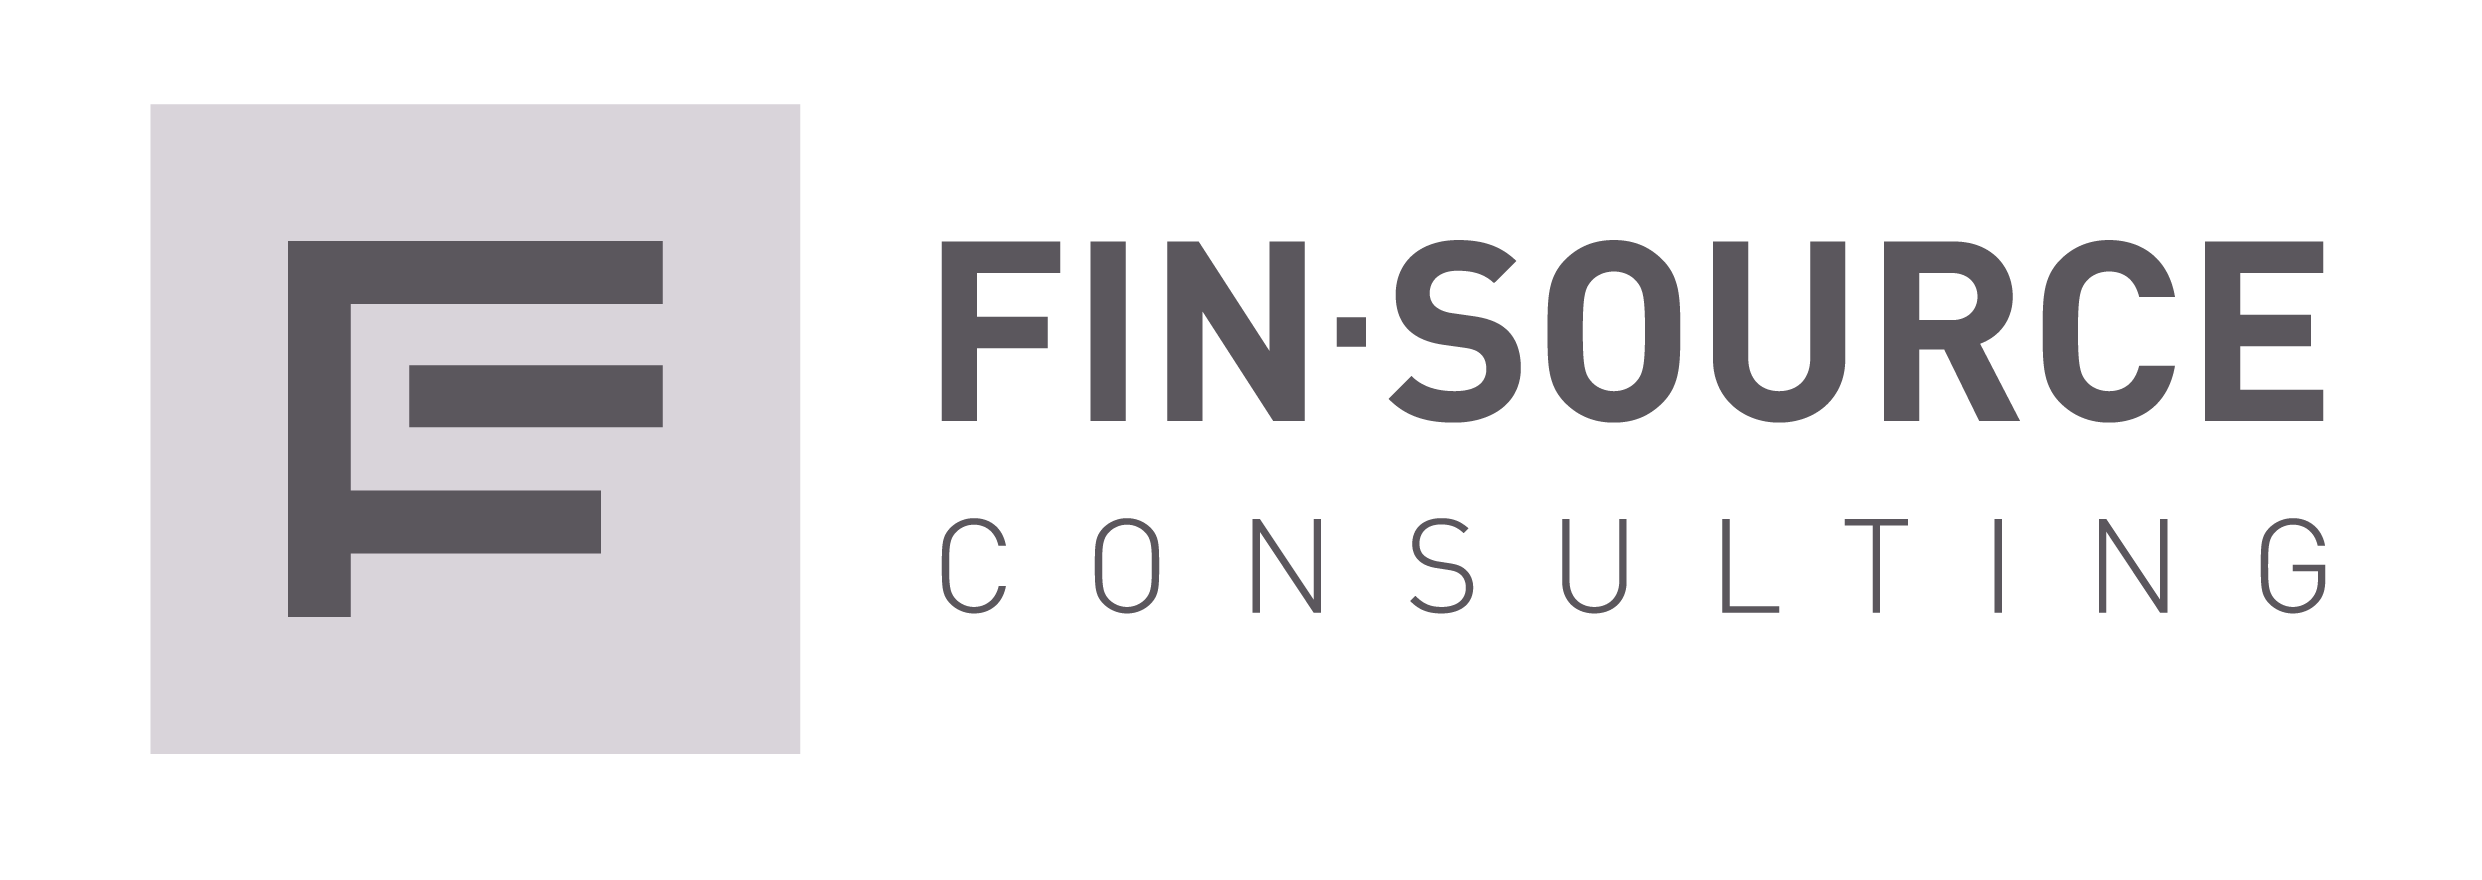 FinSource Consulting